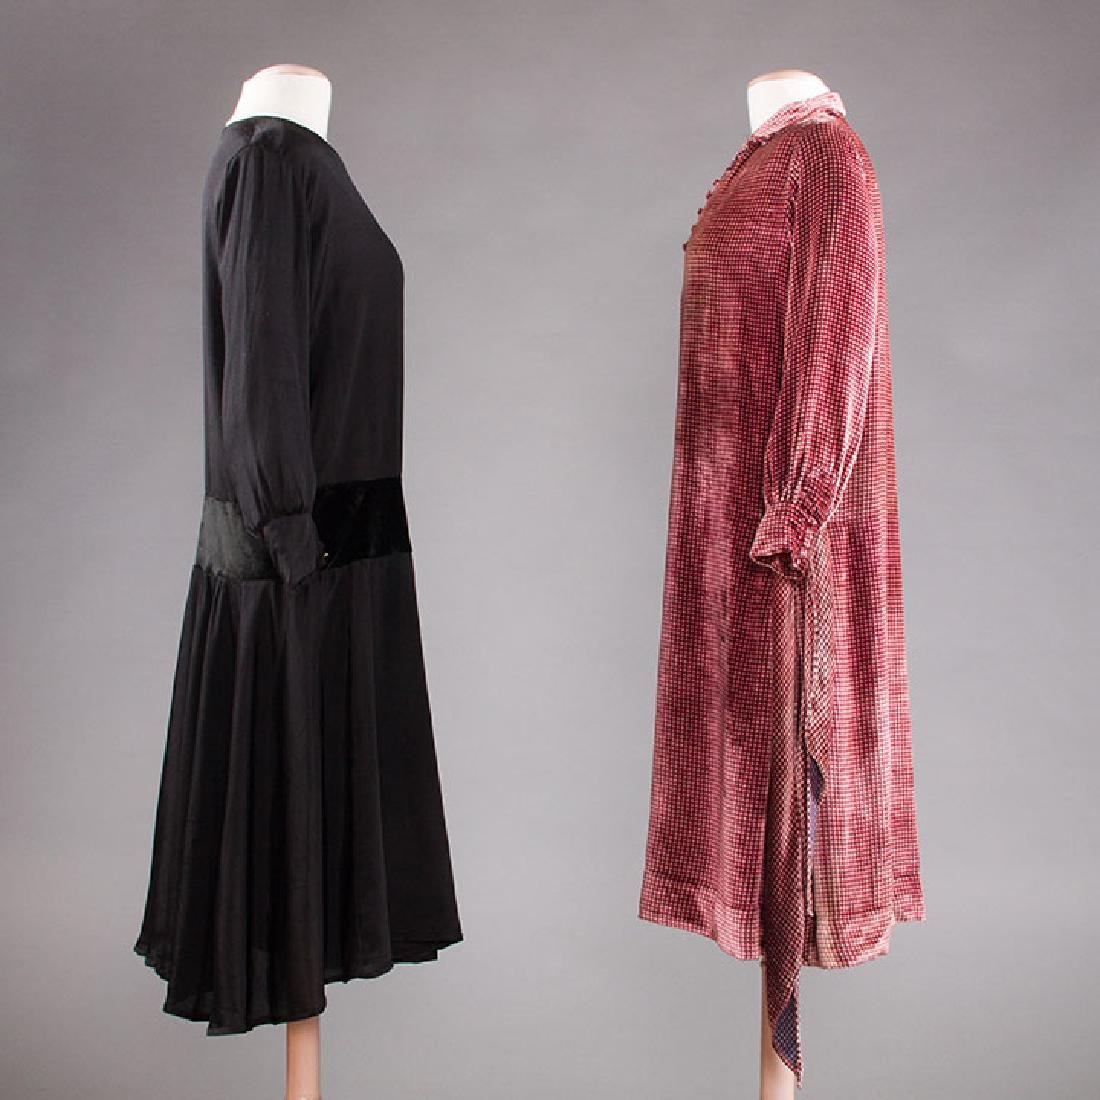 1 AFTERNOON & 1 DINNER DRESS, 1920s - 2